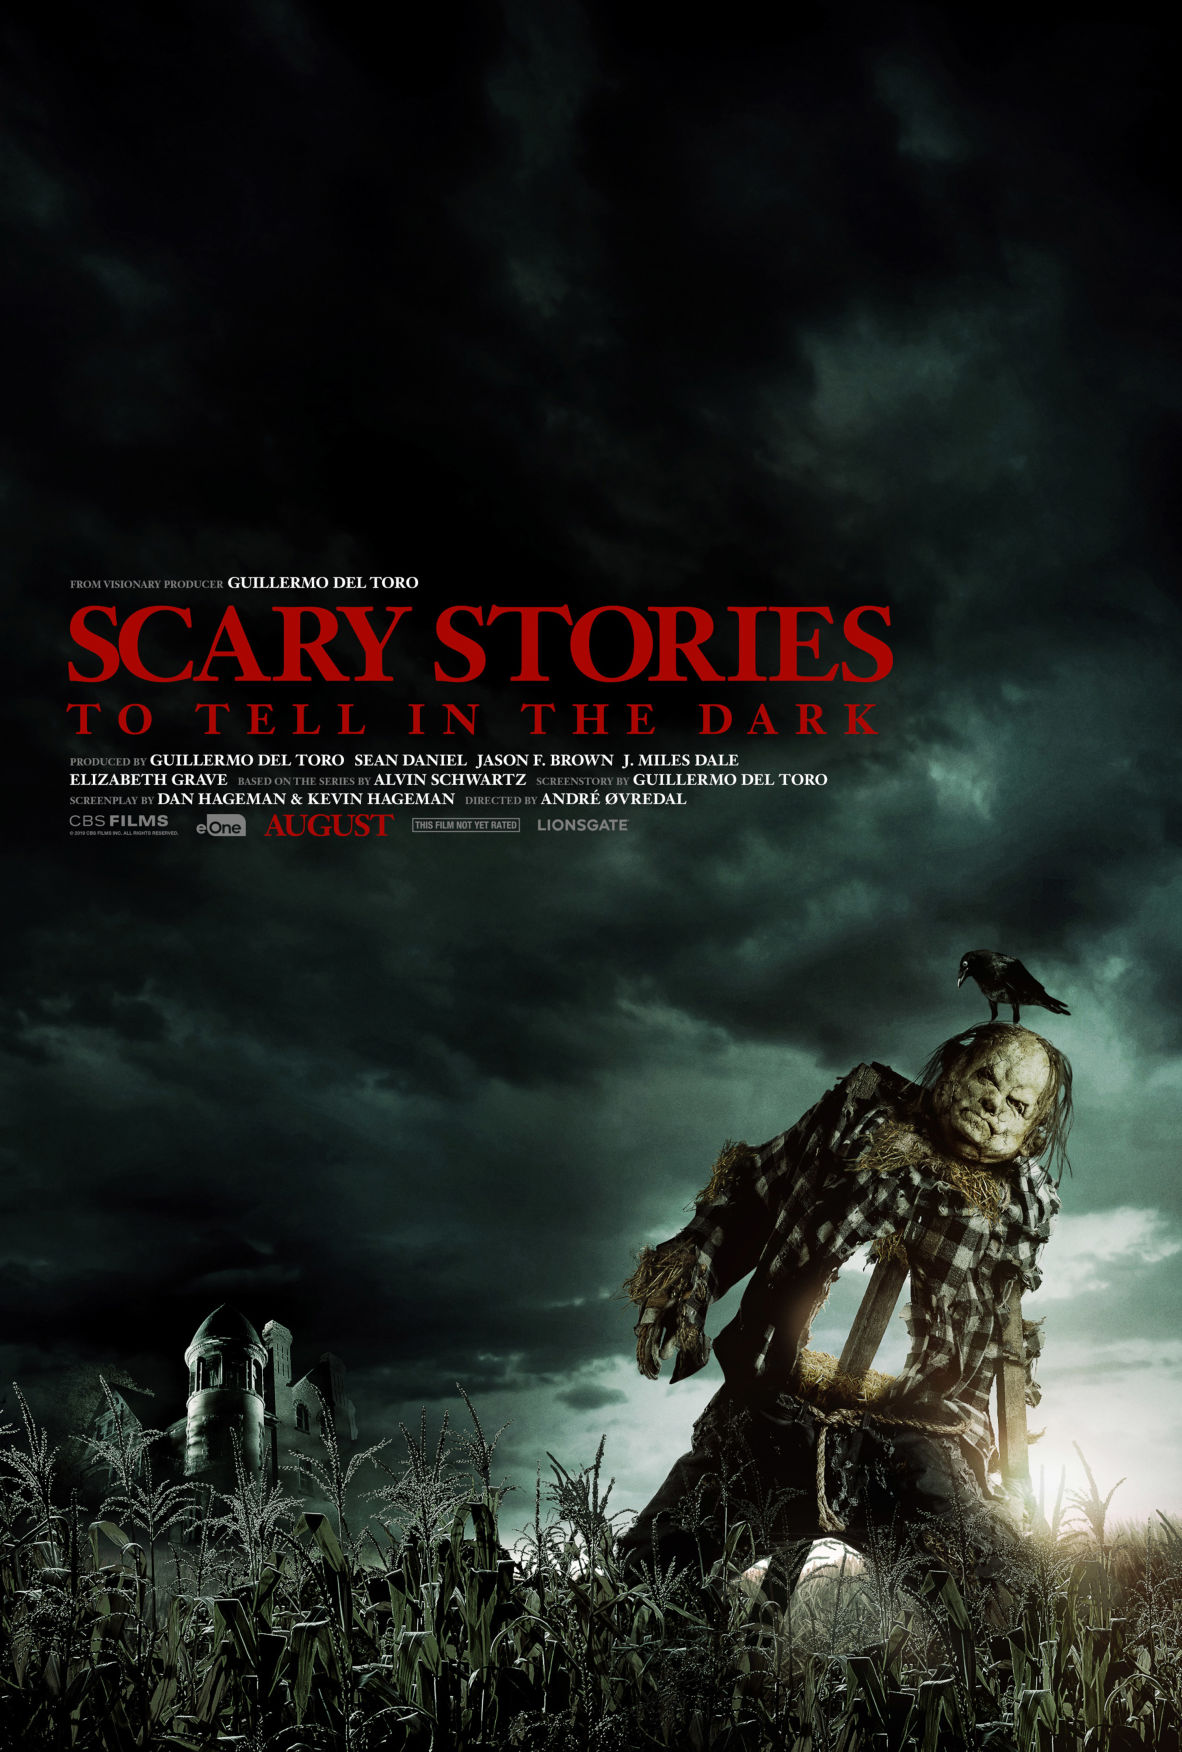 'Scary Stories to Tell in the Dark' delivers on name